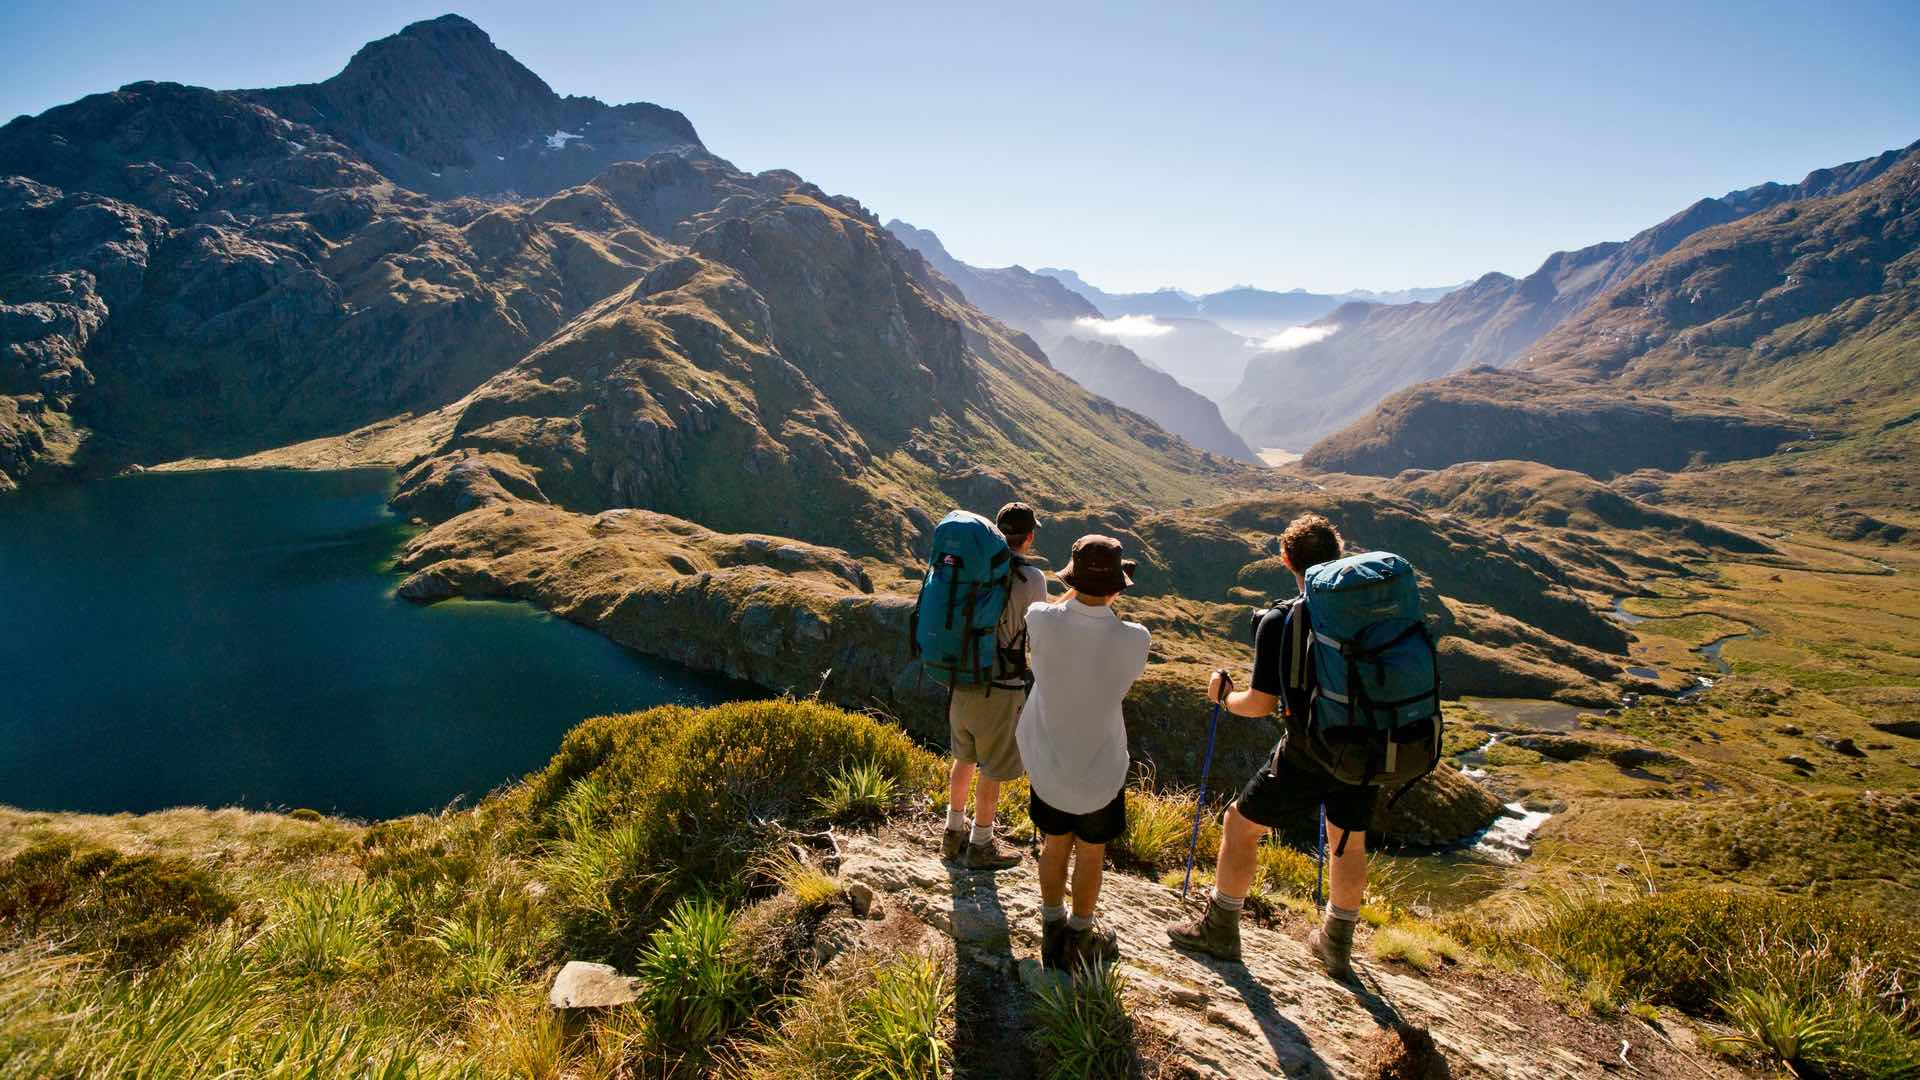 Five Hikes with Incredible Views to Discover on New Zealand's South Island